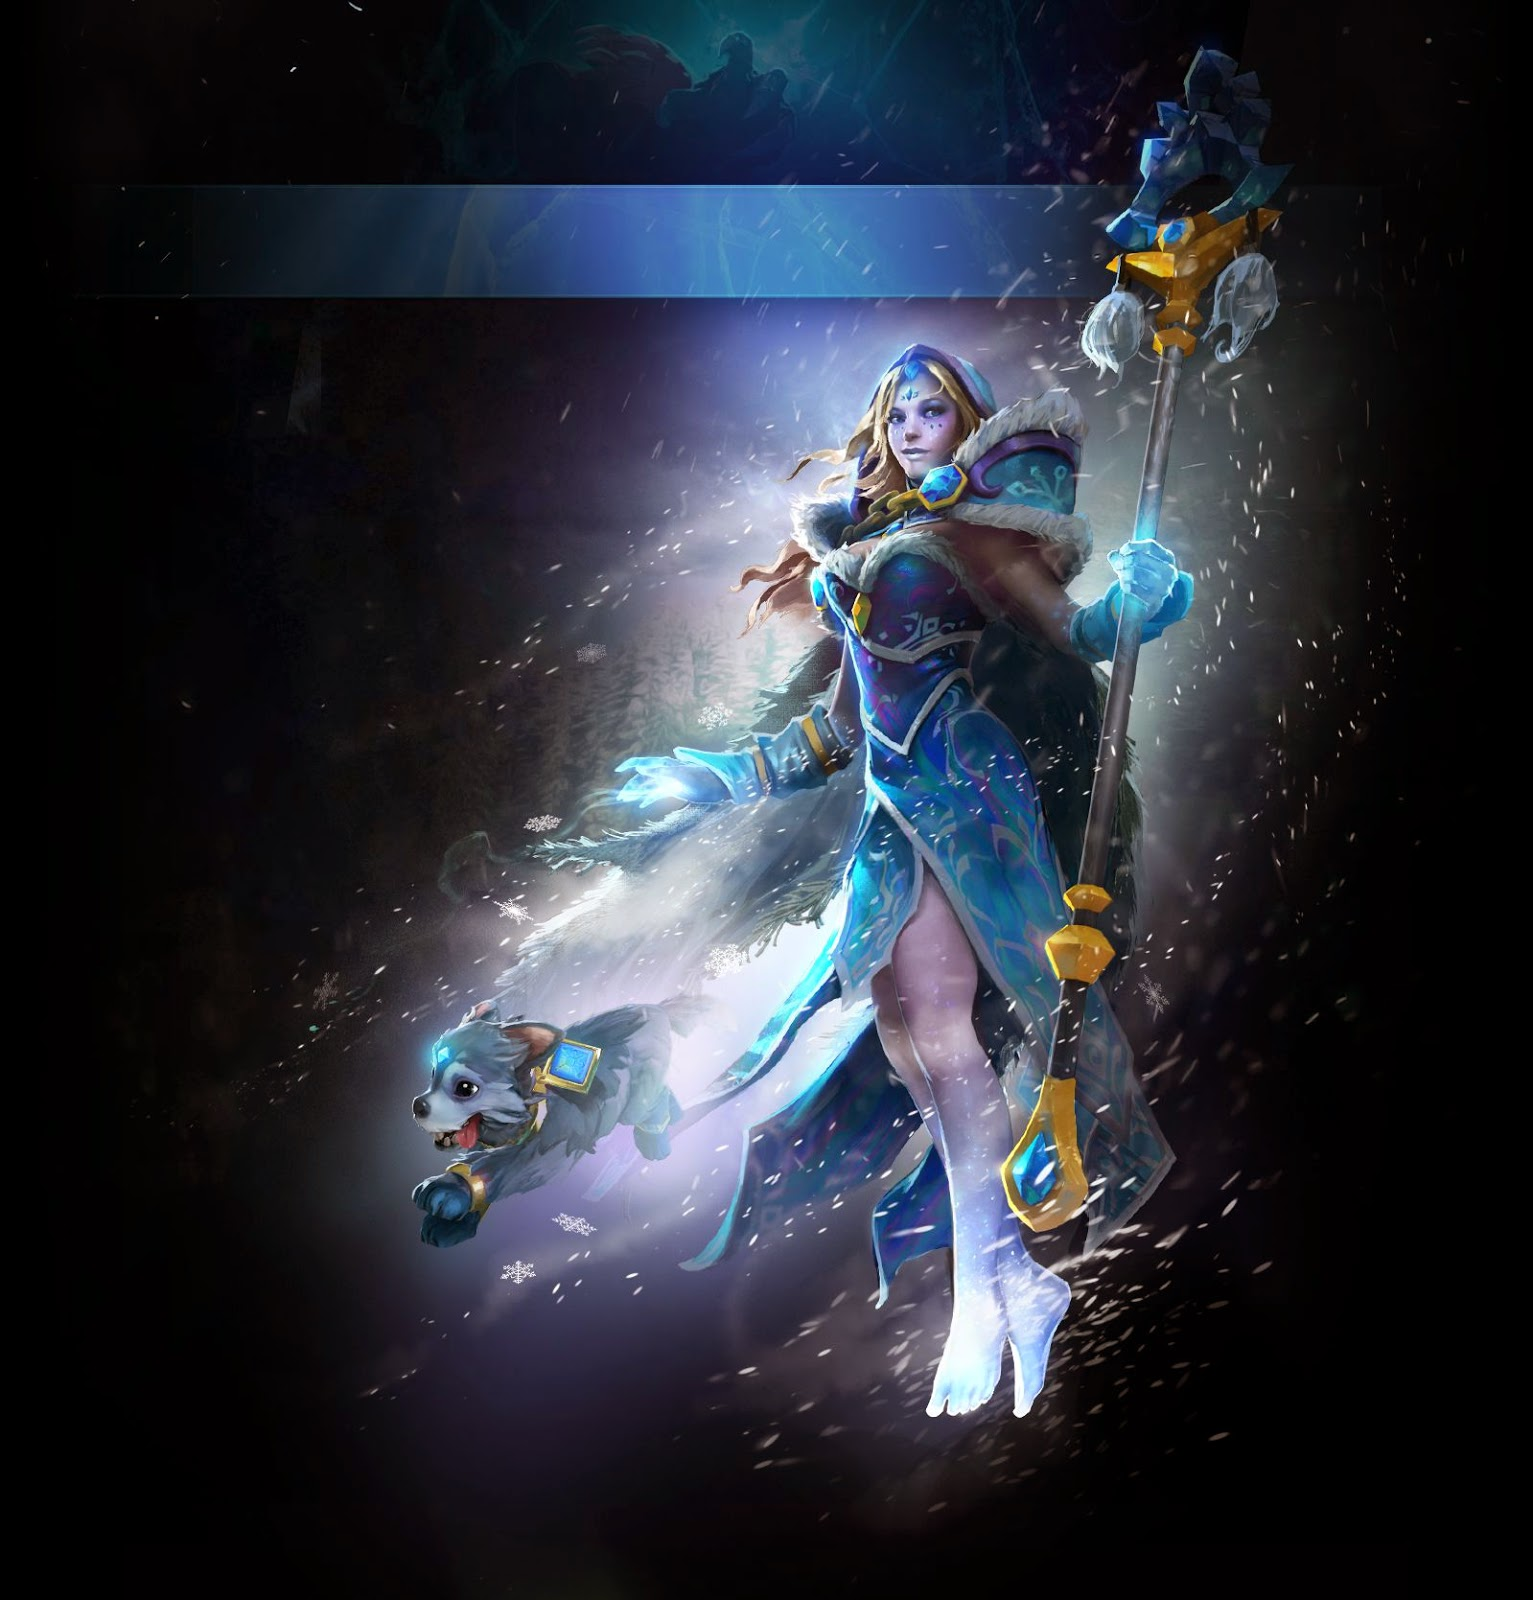 ARCANA CRYSTAL MAIDEN - FROST AVALANCHE